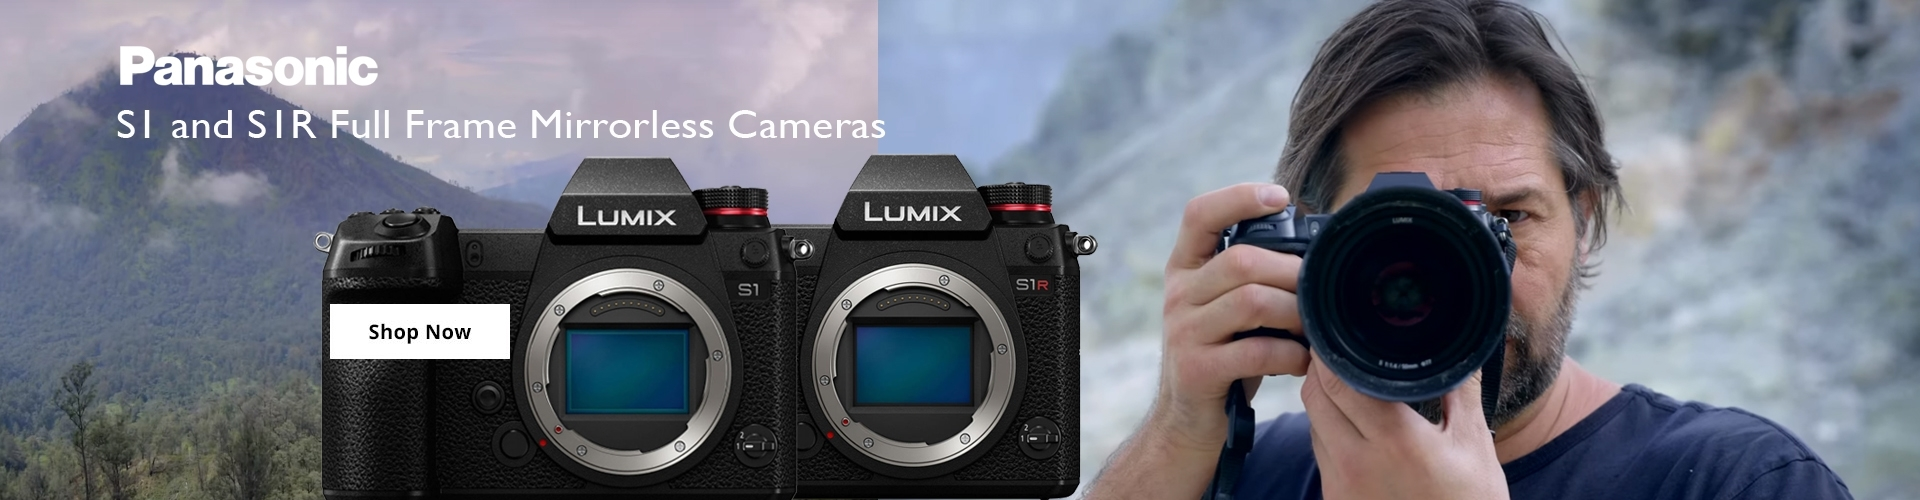 Panasonic S1 and S1r lumix cameras